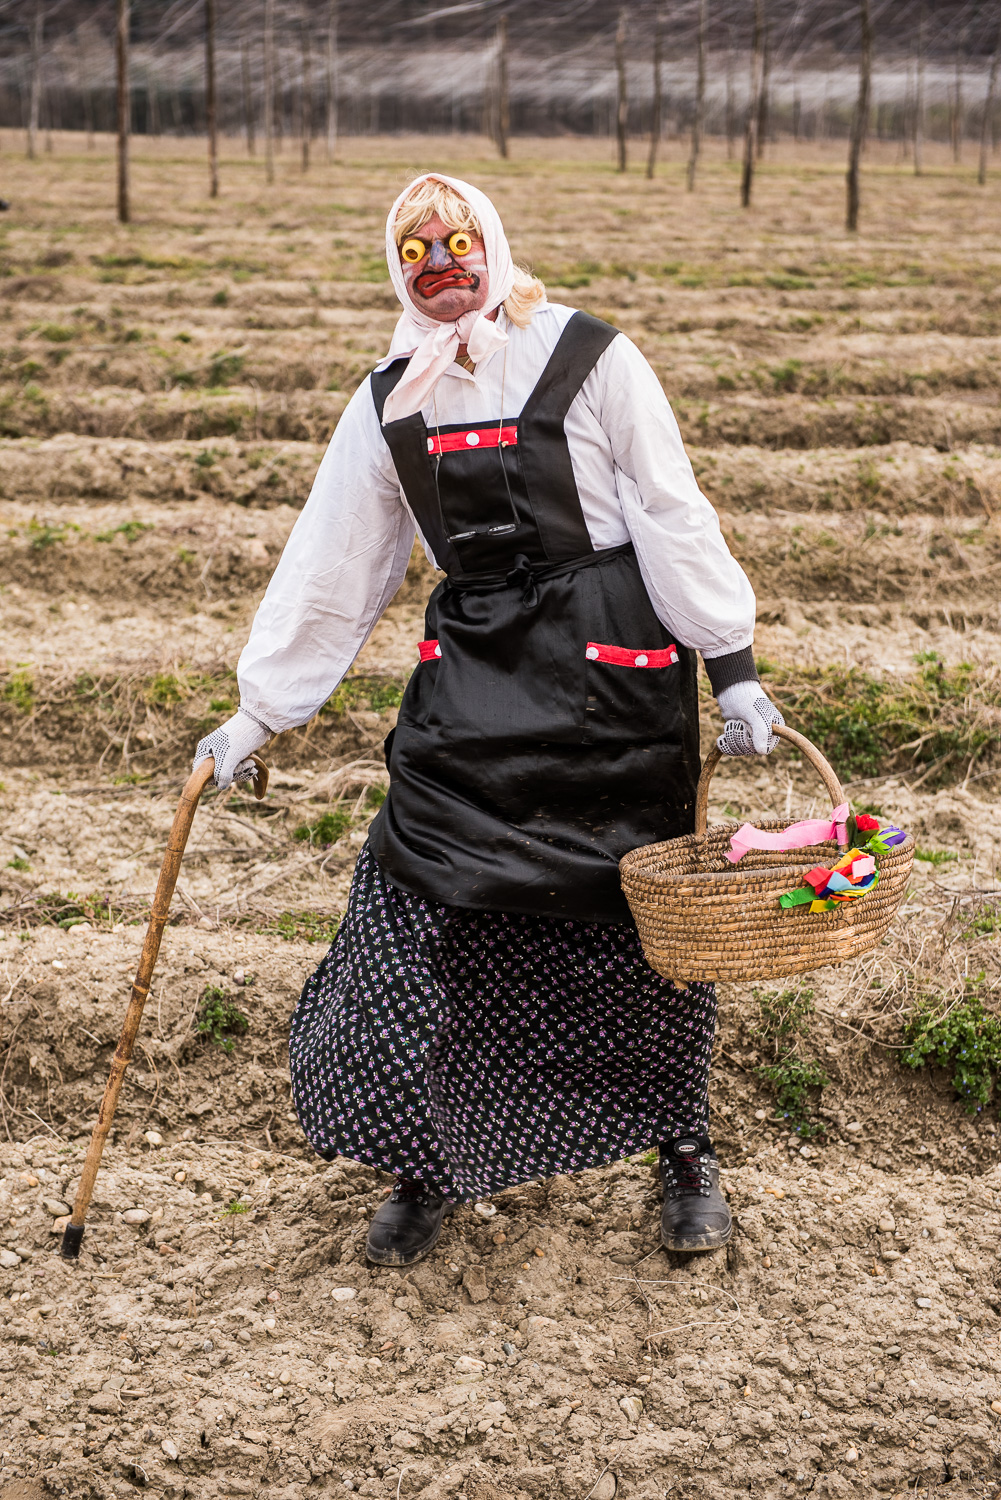 2019_Feb_Slovenia_Kurent_Oraci_Portraits_0246.jpg